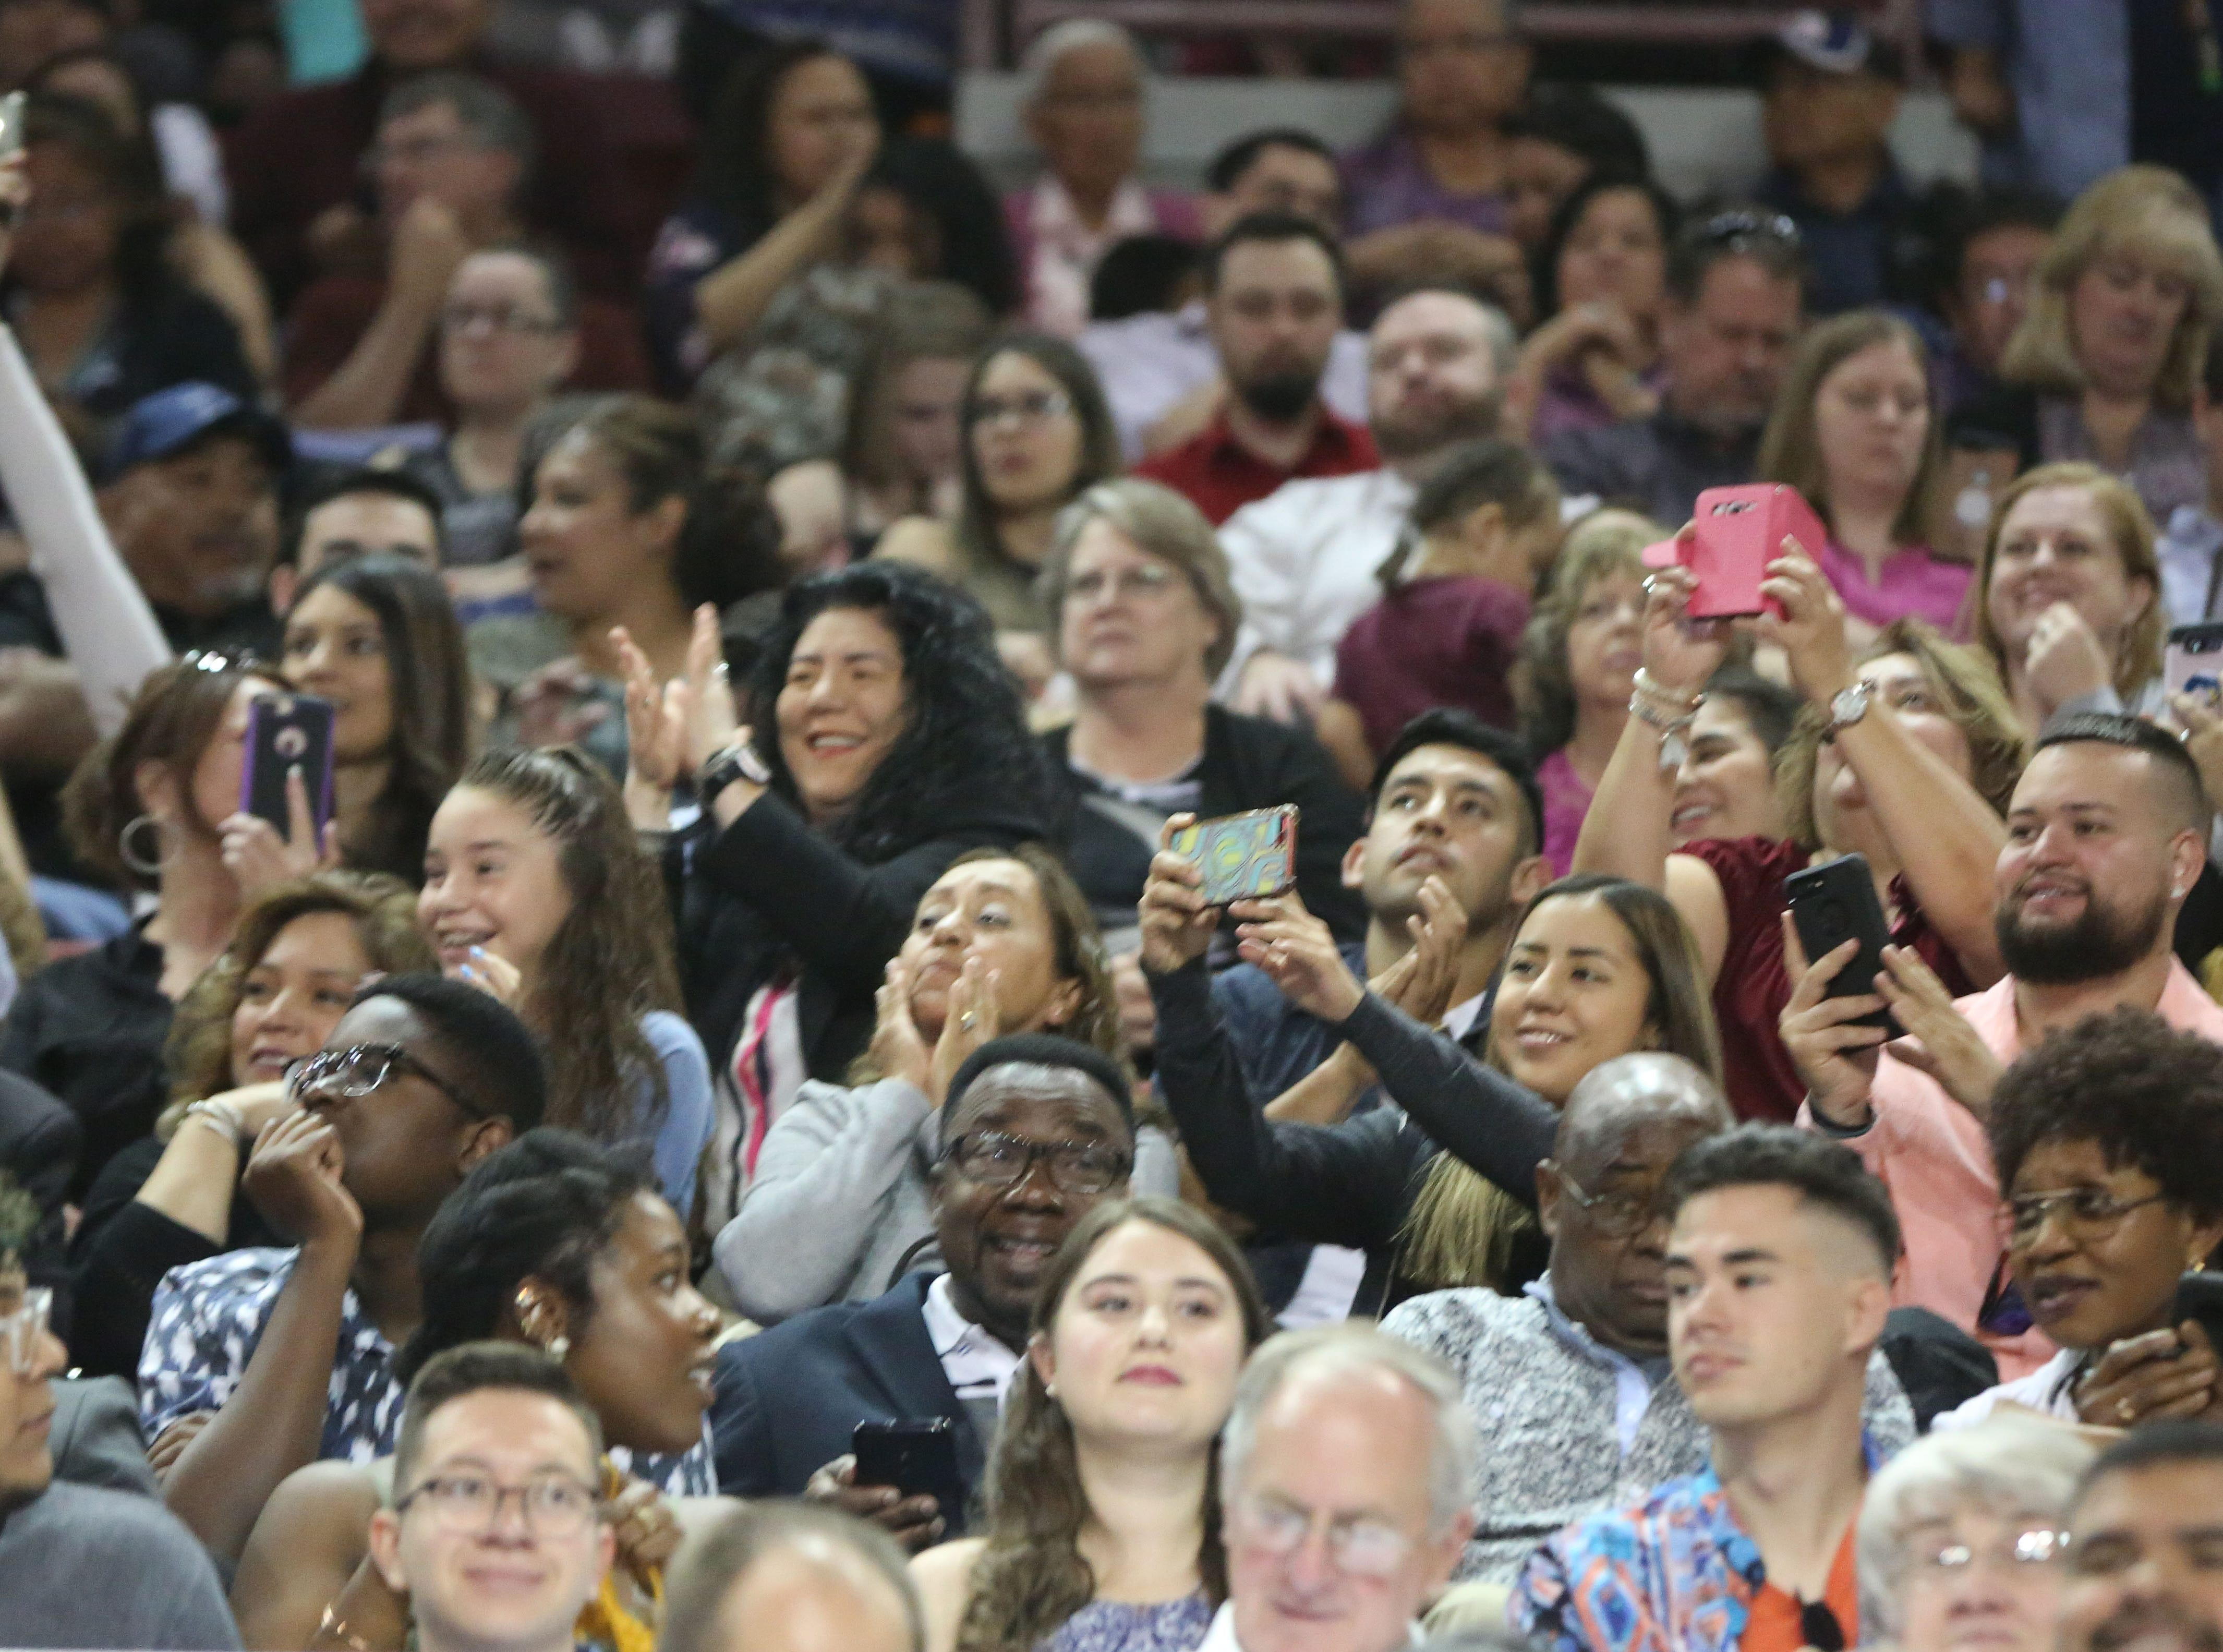 Family members cheer on their graduates during New Mexico State Universities commencement ceremonies Saturday May 11, 2019.